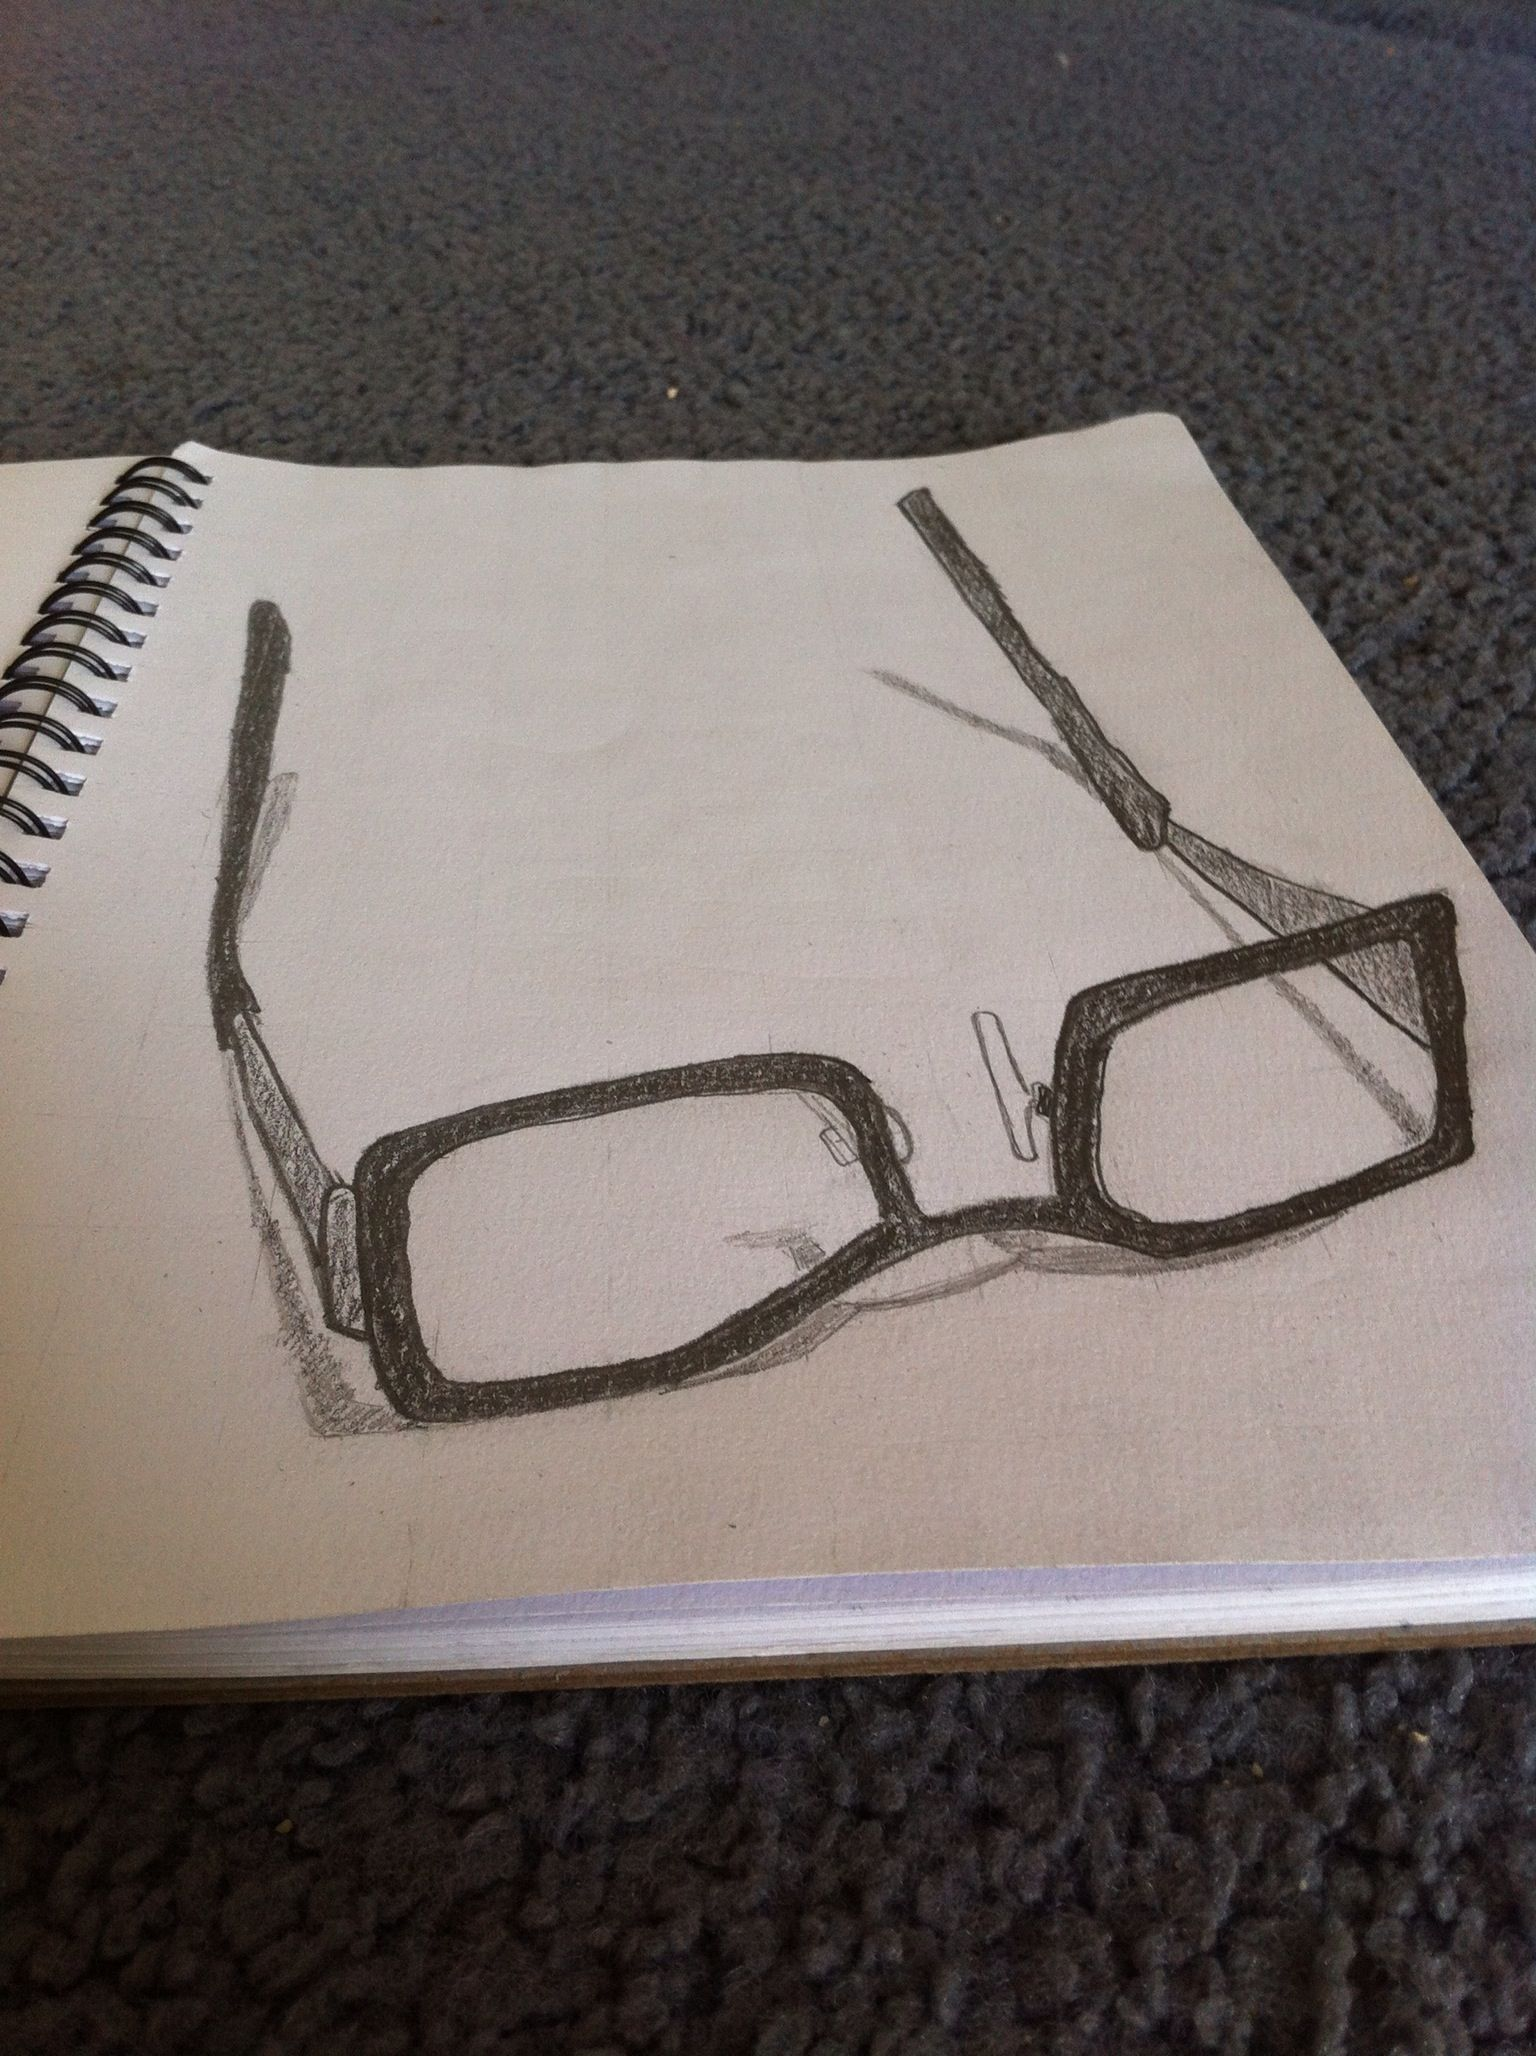 3d sketch of my glasses